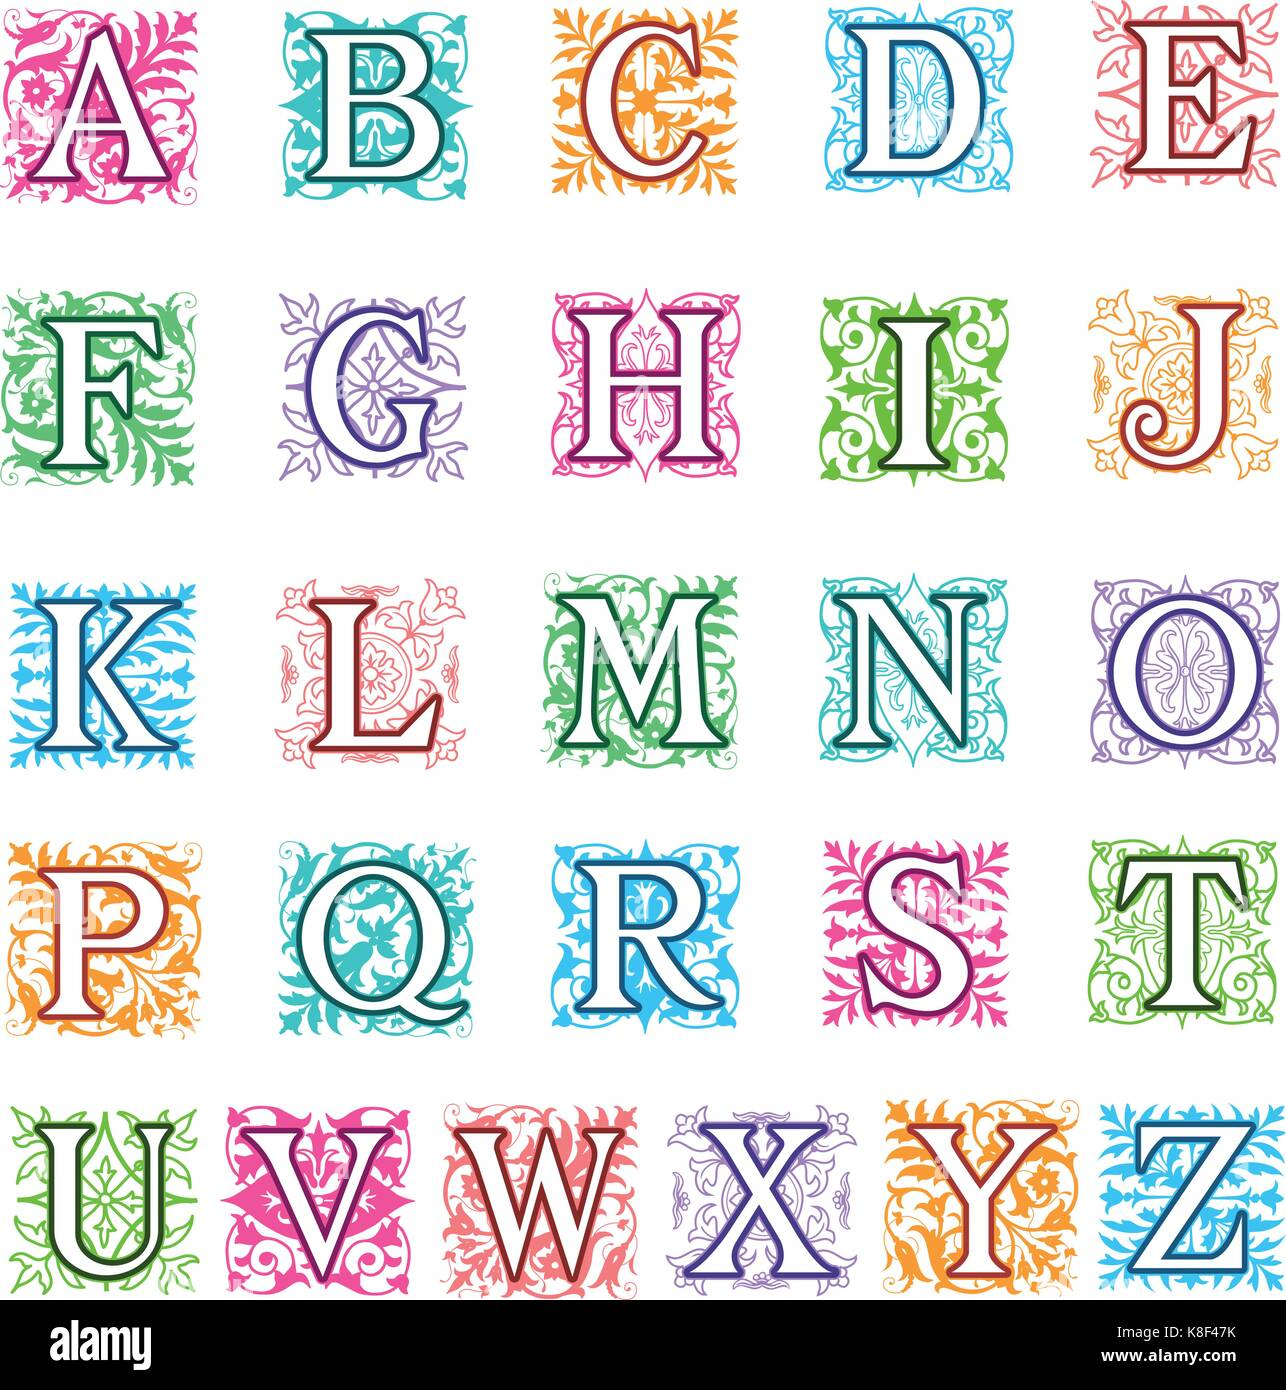 Colorful Vector Illustration Of A Complete Set Alphabet Letters In Uppercase With Square Format Ornamental Decoration Behind Each Capital Letter